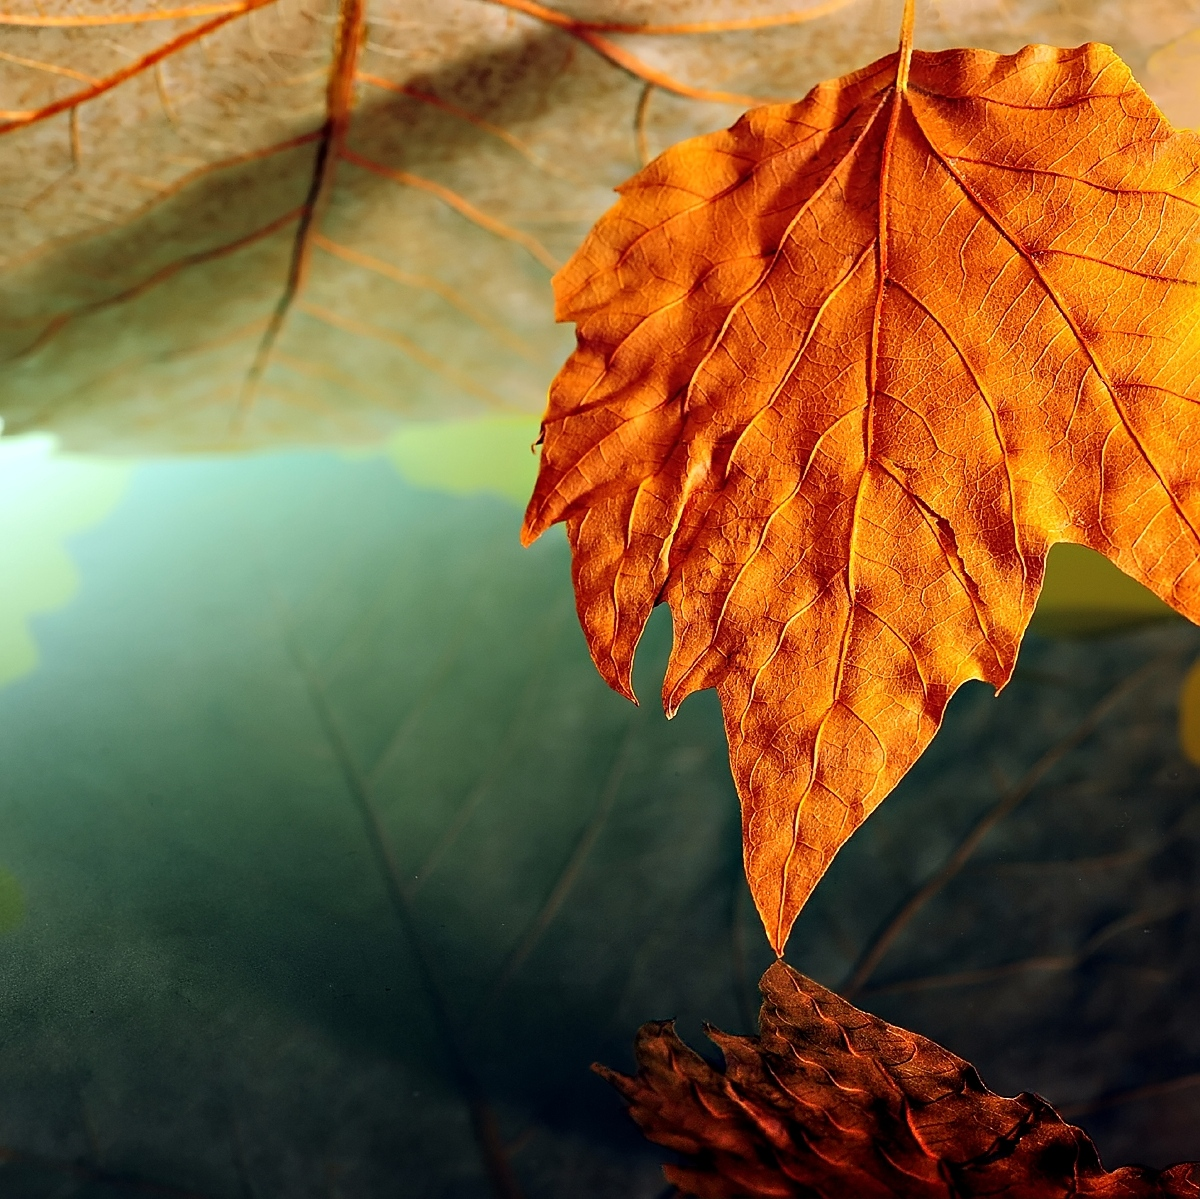 Never think that dead leaves cannot speak...